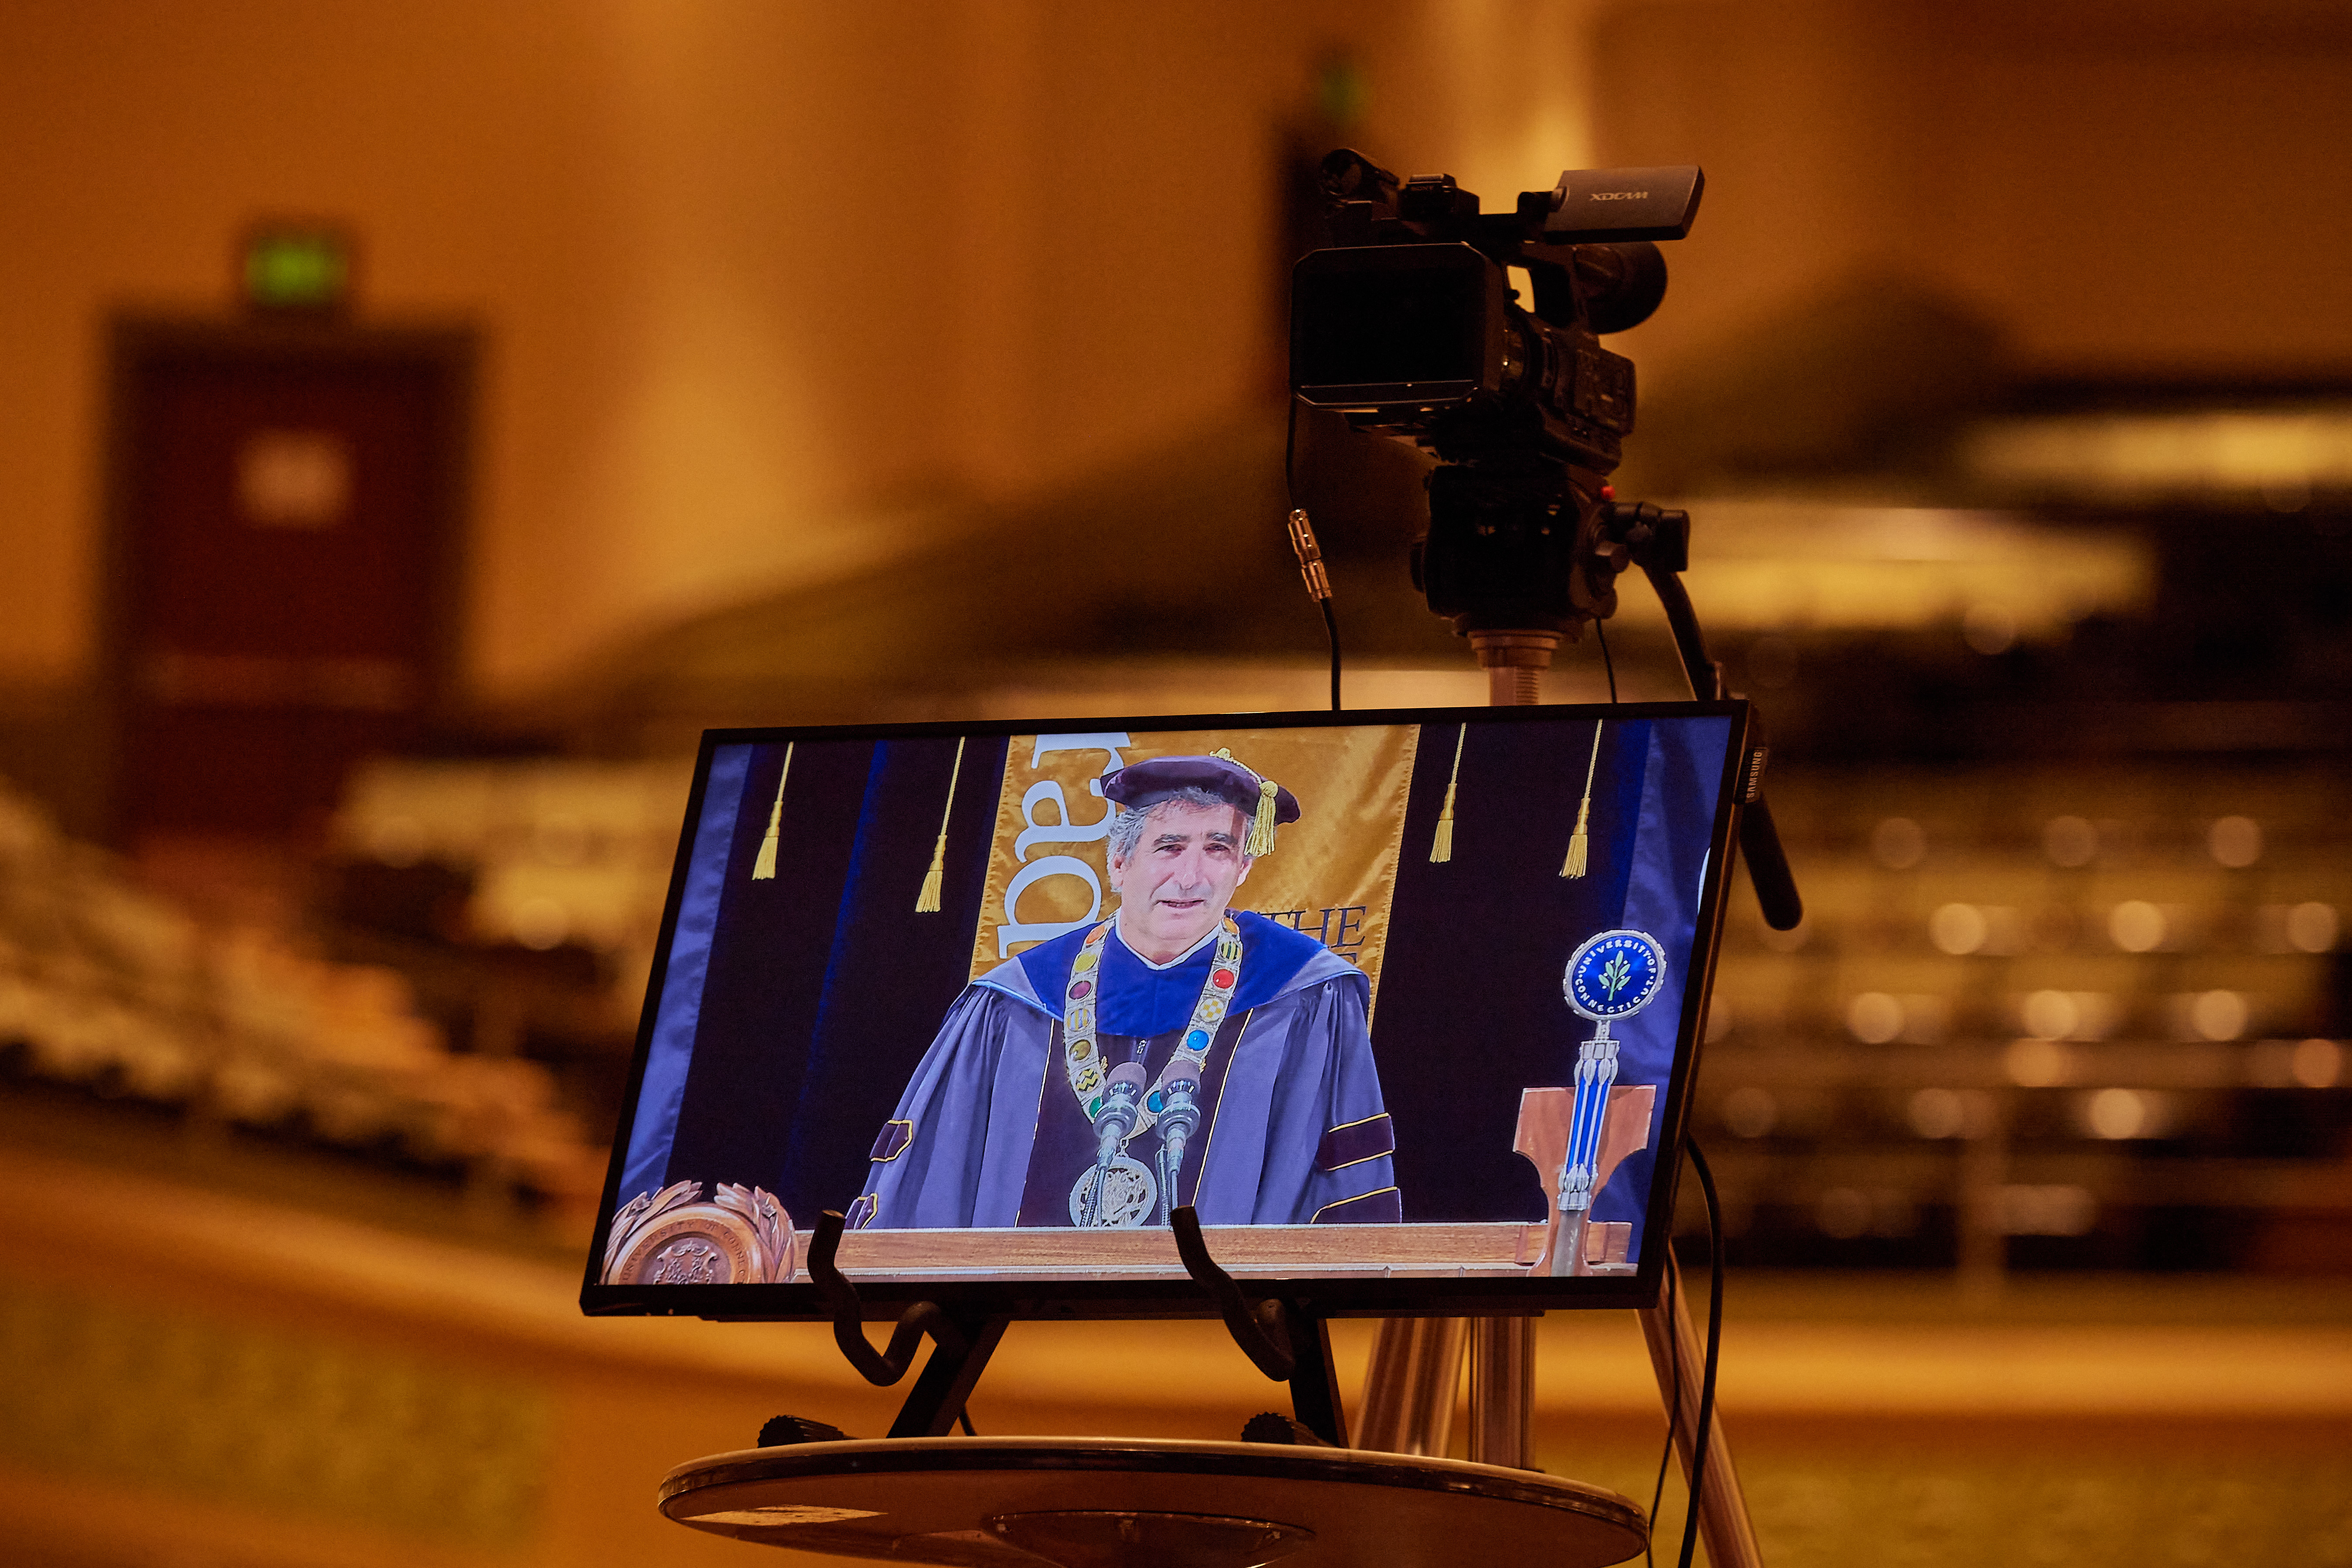 A television monitor shows President Thomas Katsouleas during the virtual Commencement ceremony broadcast from the Jorgensen Center for the Performing Arts on May 9, 2020.